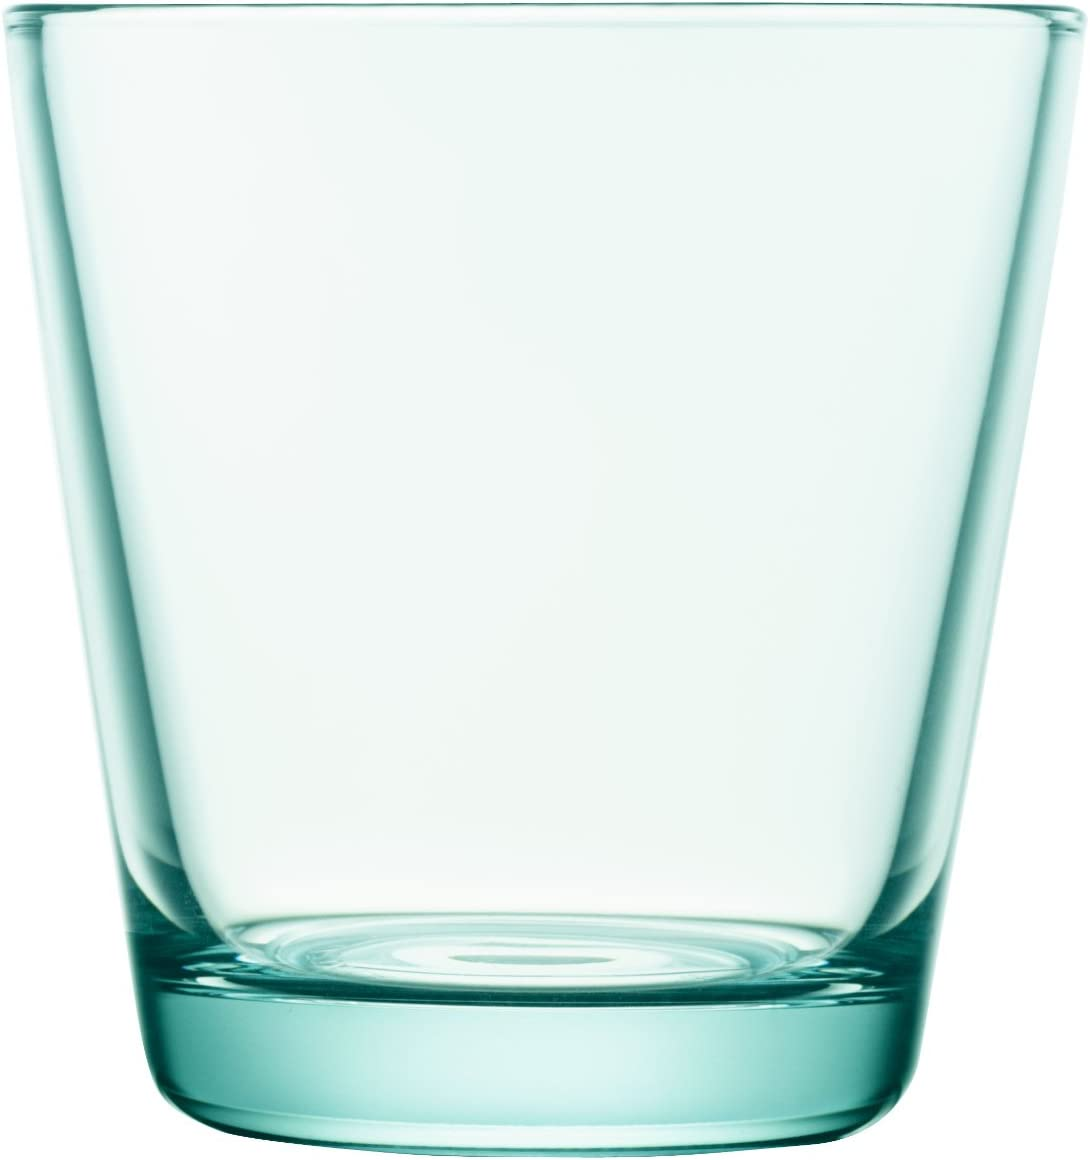 Iittala Kartio Set of Two Glass Tumblers, Water Green, 7-Ounce Capacity